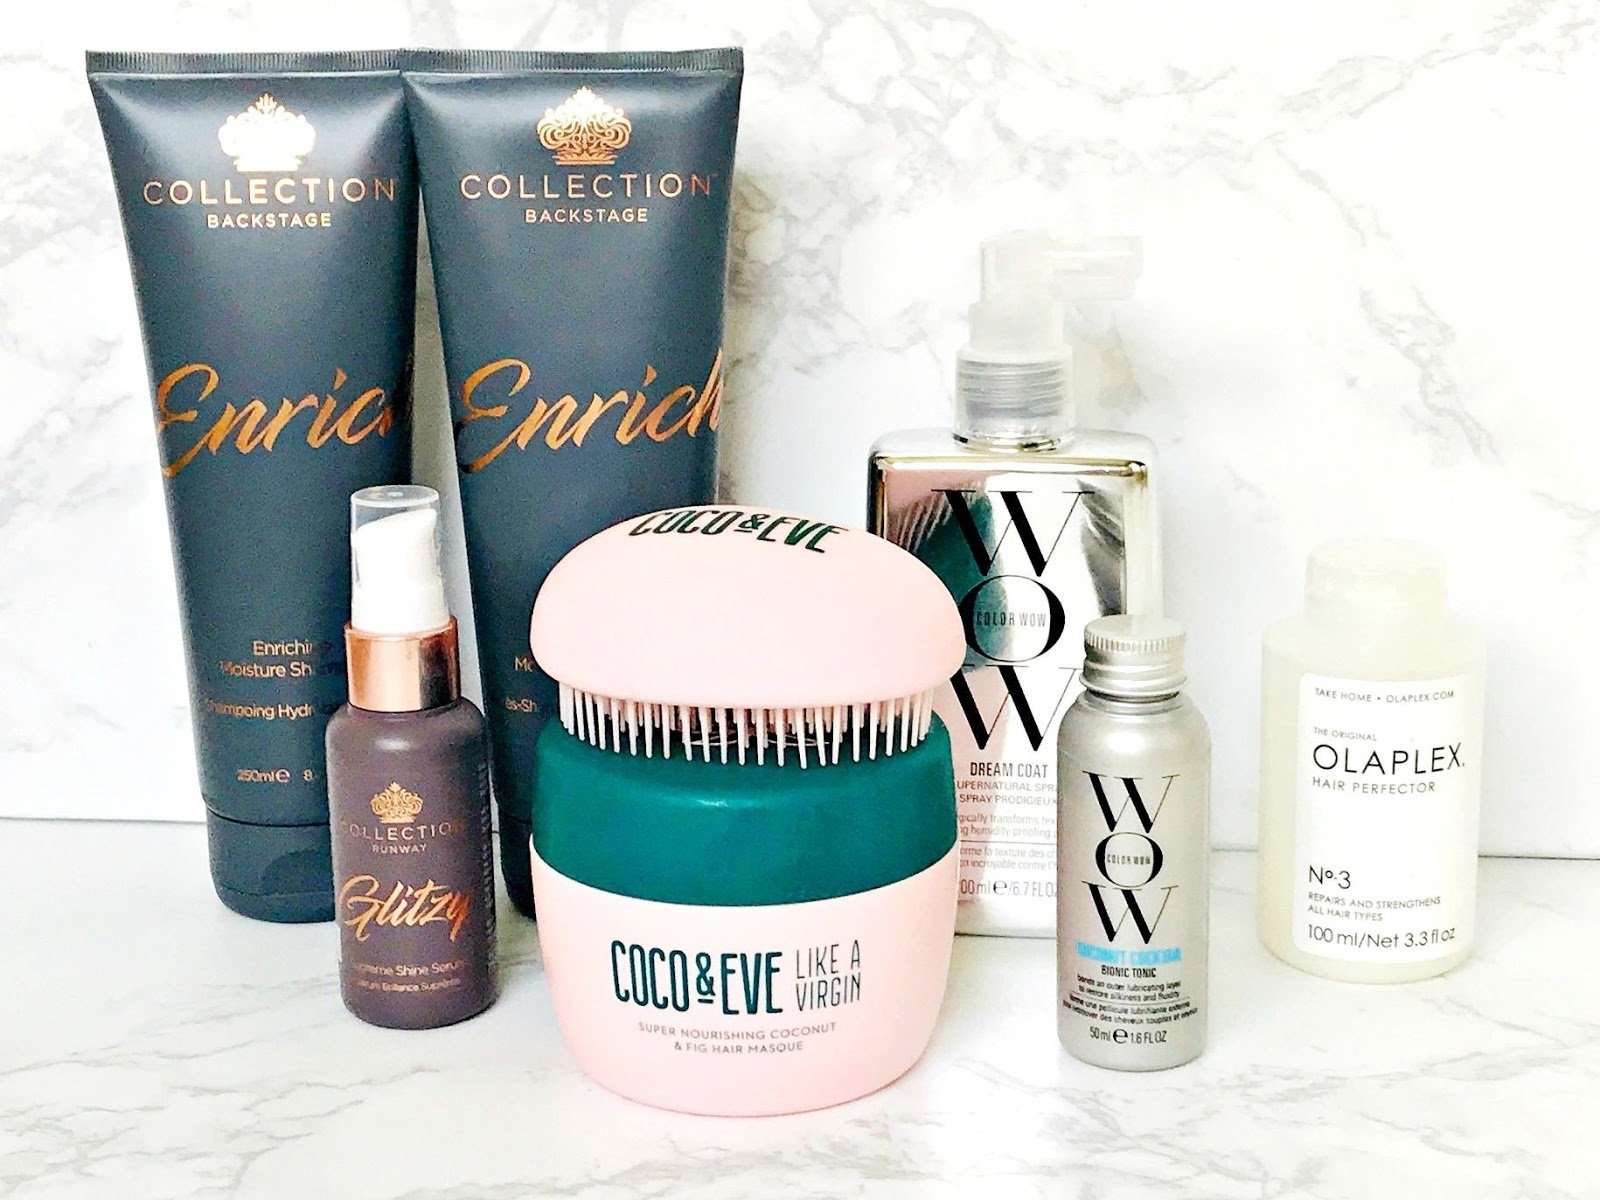 Collection Enrich Moisturise Shampoo, Collection Enrich Conditioner, Collection Glitzy Serum, Haircare, Olaplex No 3 Hair Perfector, Coco & Eve Super Nourishing Coconut & Fig Hair Masque, Color WOW Dream Cocktail Coconut Infused, Color WOW Dream Coat Supernatural Spray